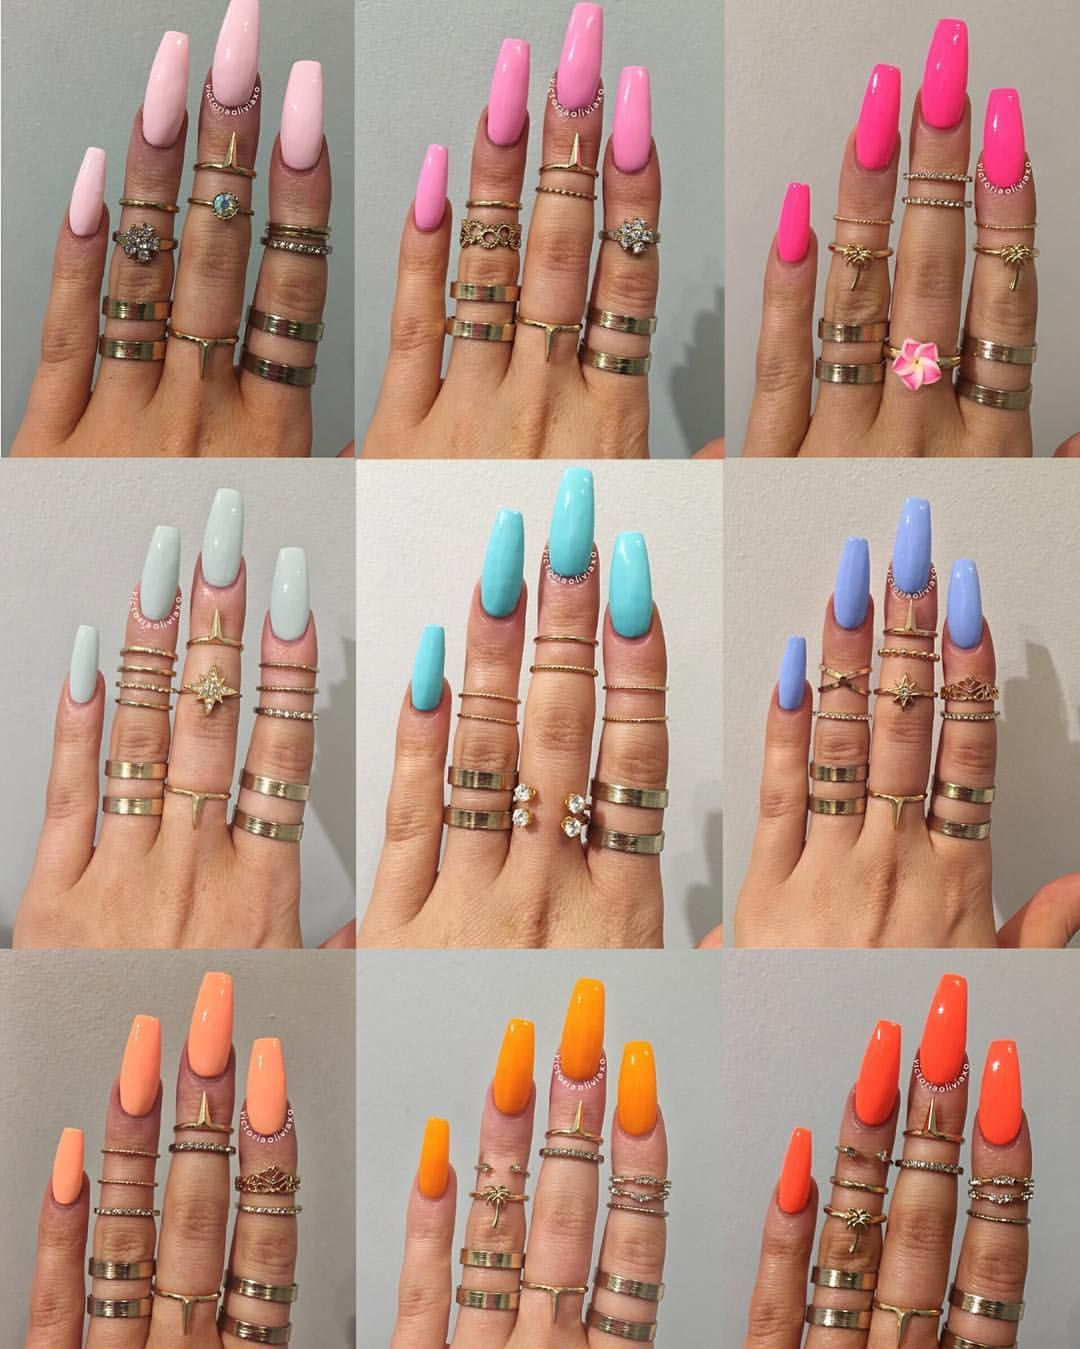 Colours all @flossgloss #FLOSSGLOSS | Nail Polish | Pinterest | Nail ...